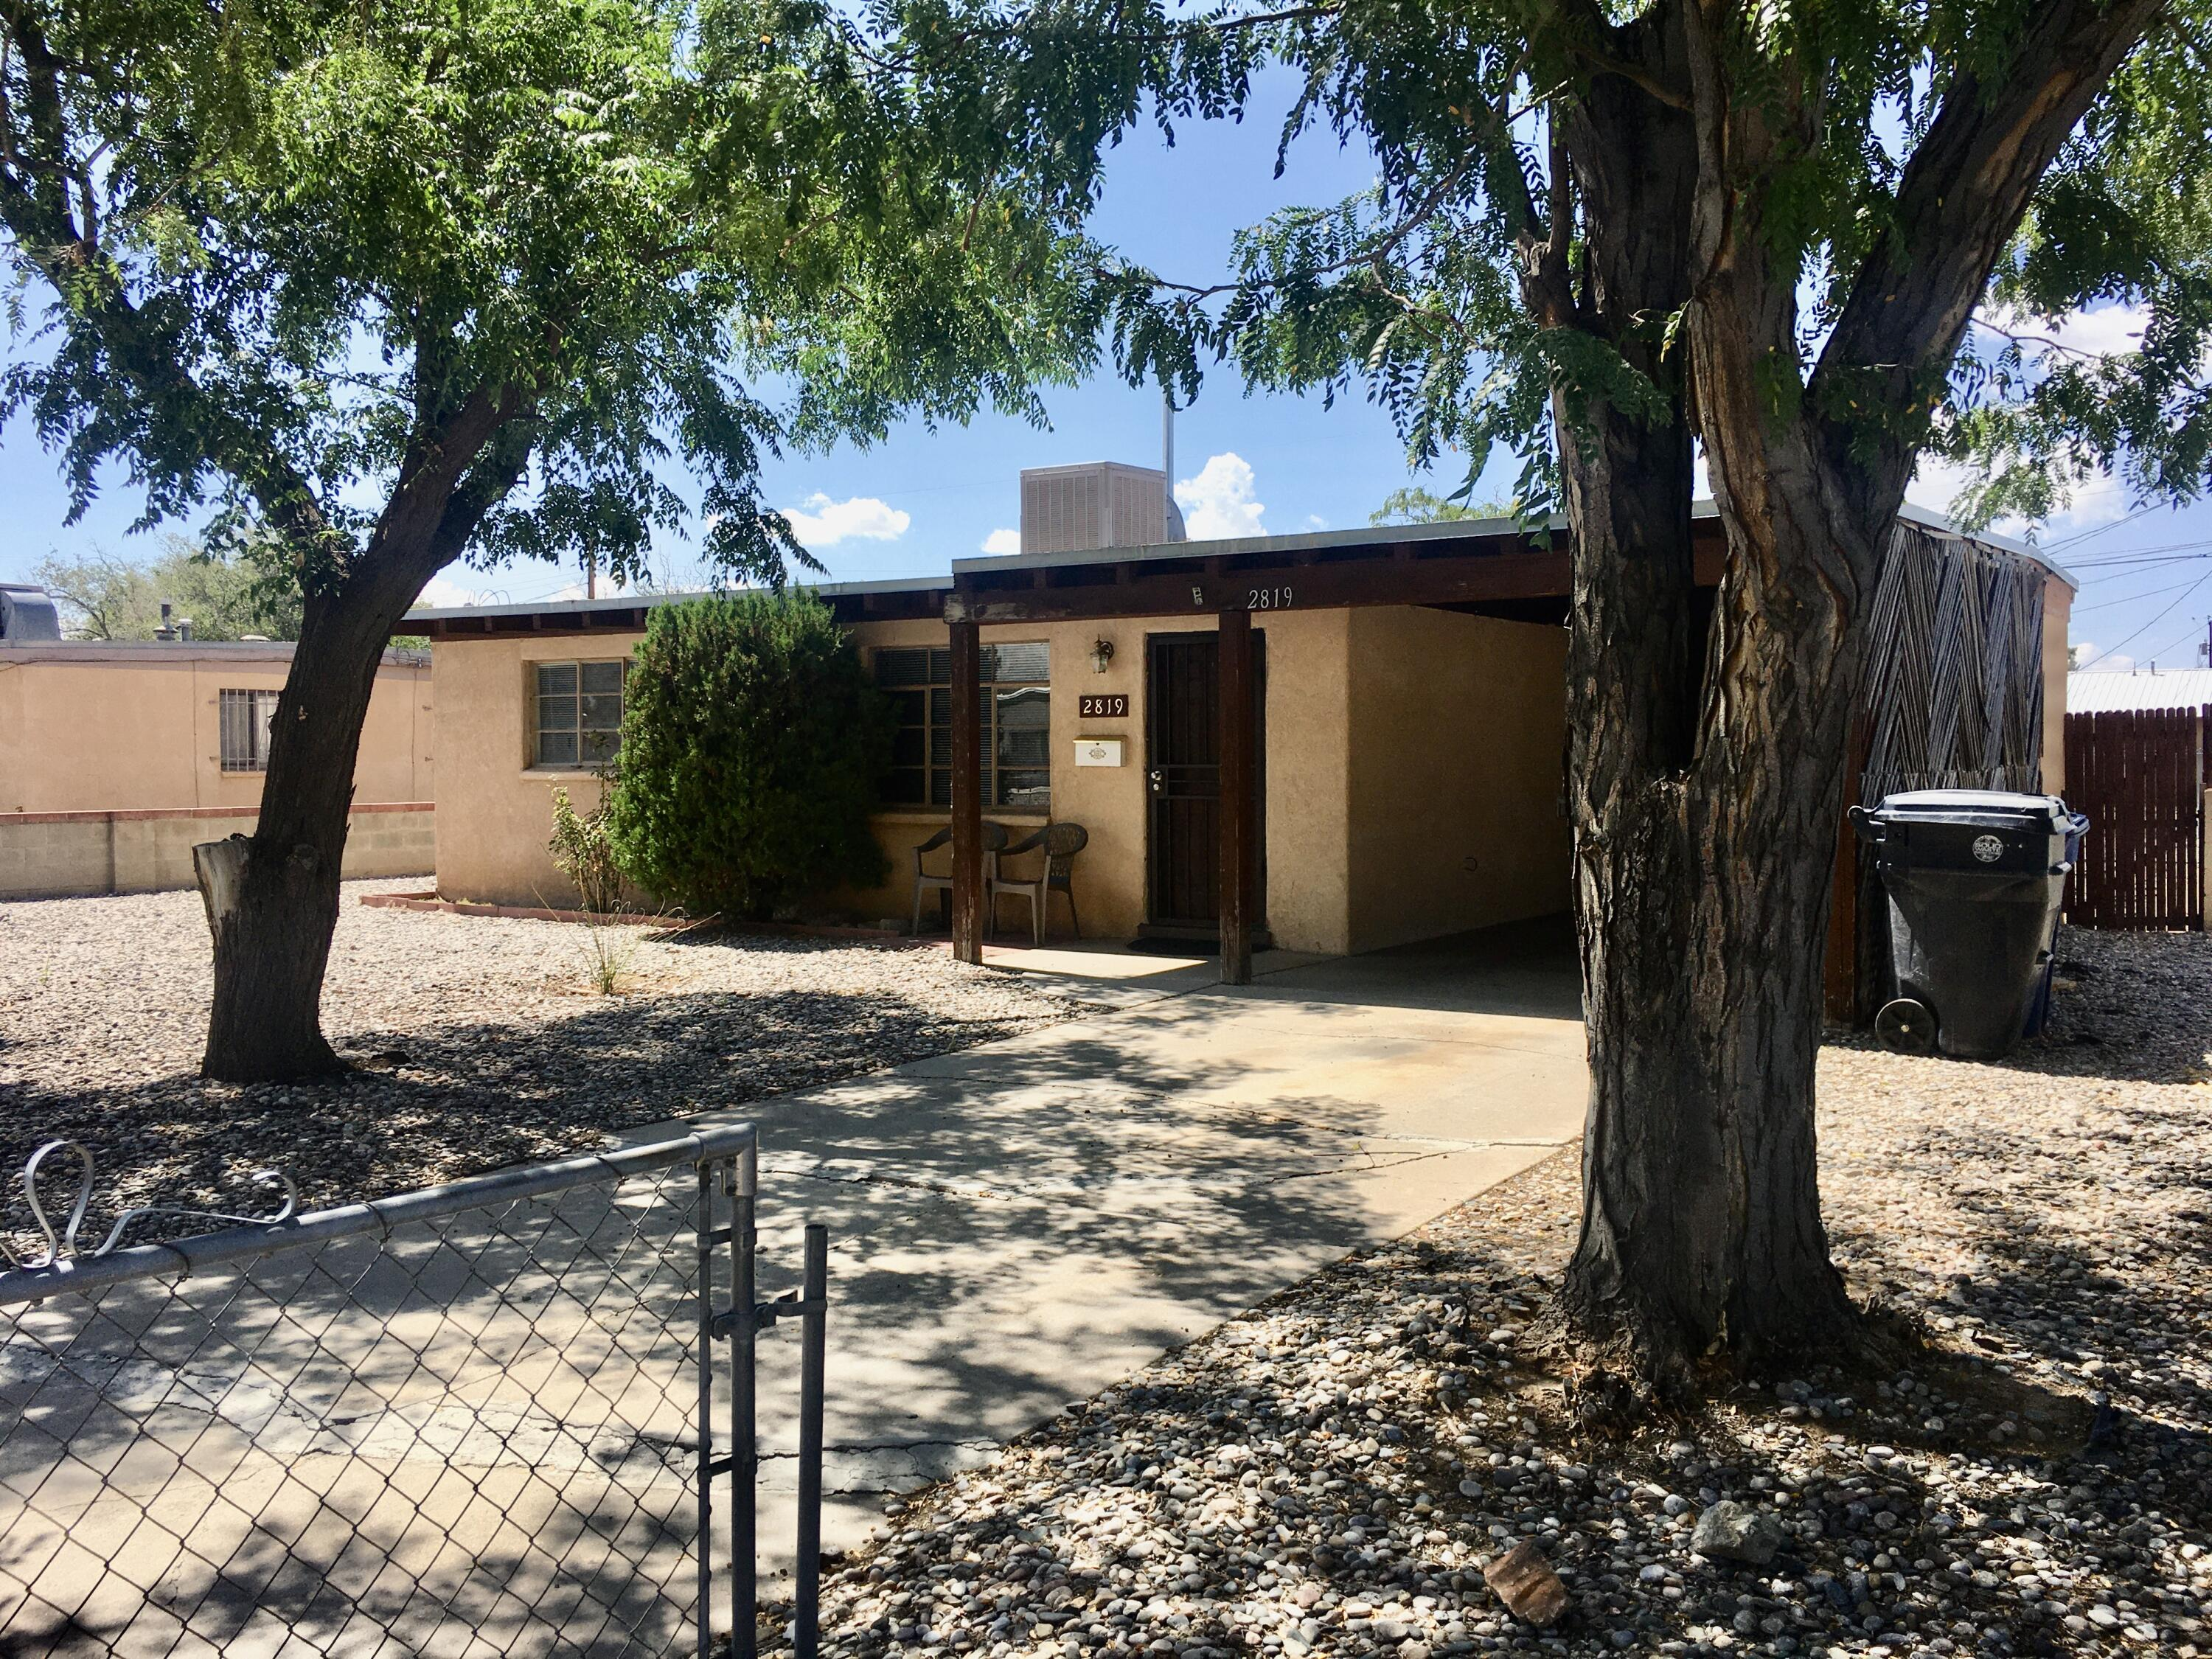 Don't miss out on the Uptown single story, NE heights gem! Once you open the front door you are greeted by gorgeous wood beams throughout the living room, kitchen, hallway and front 2 bedrooms. This home has possible backyard access and sits on a very large lot with a storage.building. Just minutes away from ABQ Uptown, shopping and dining, Coronado Mall, Movie Theater and I-40 access. Great Central Albuquerque location. A must see!